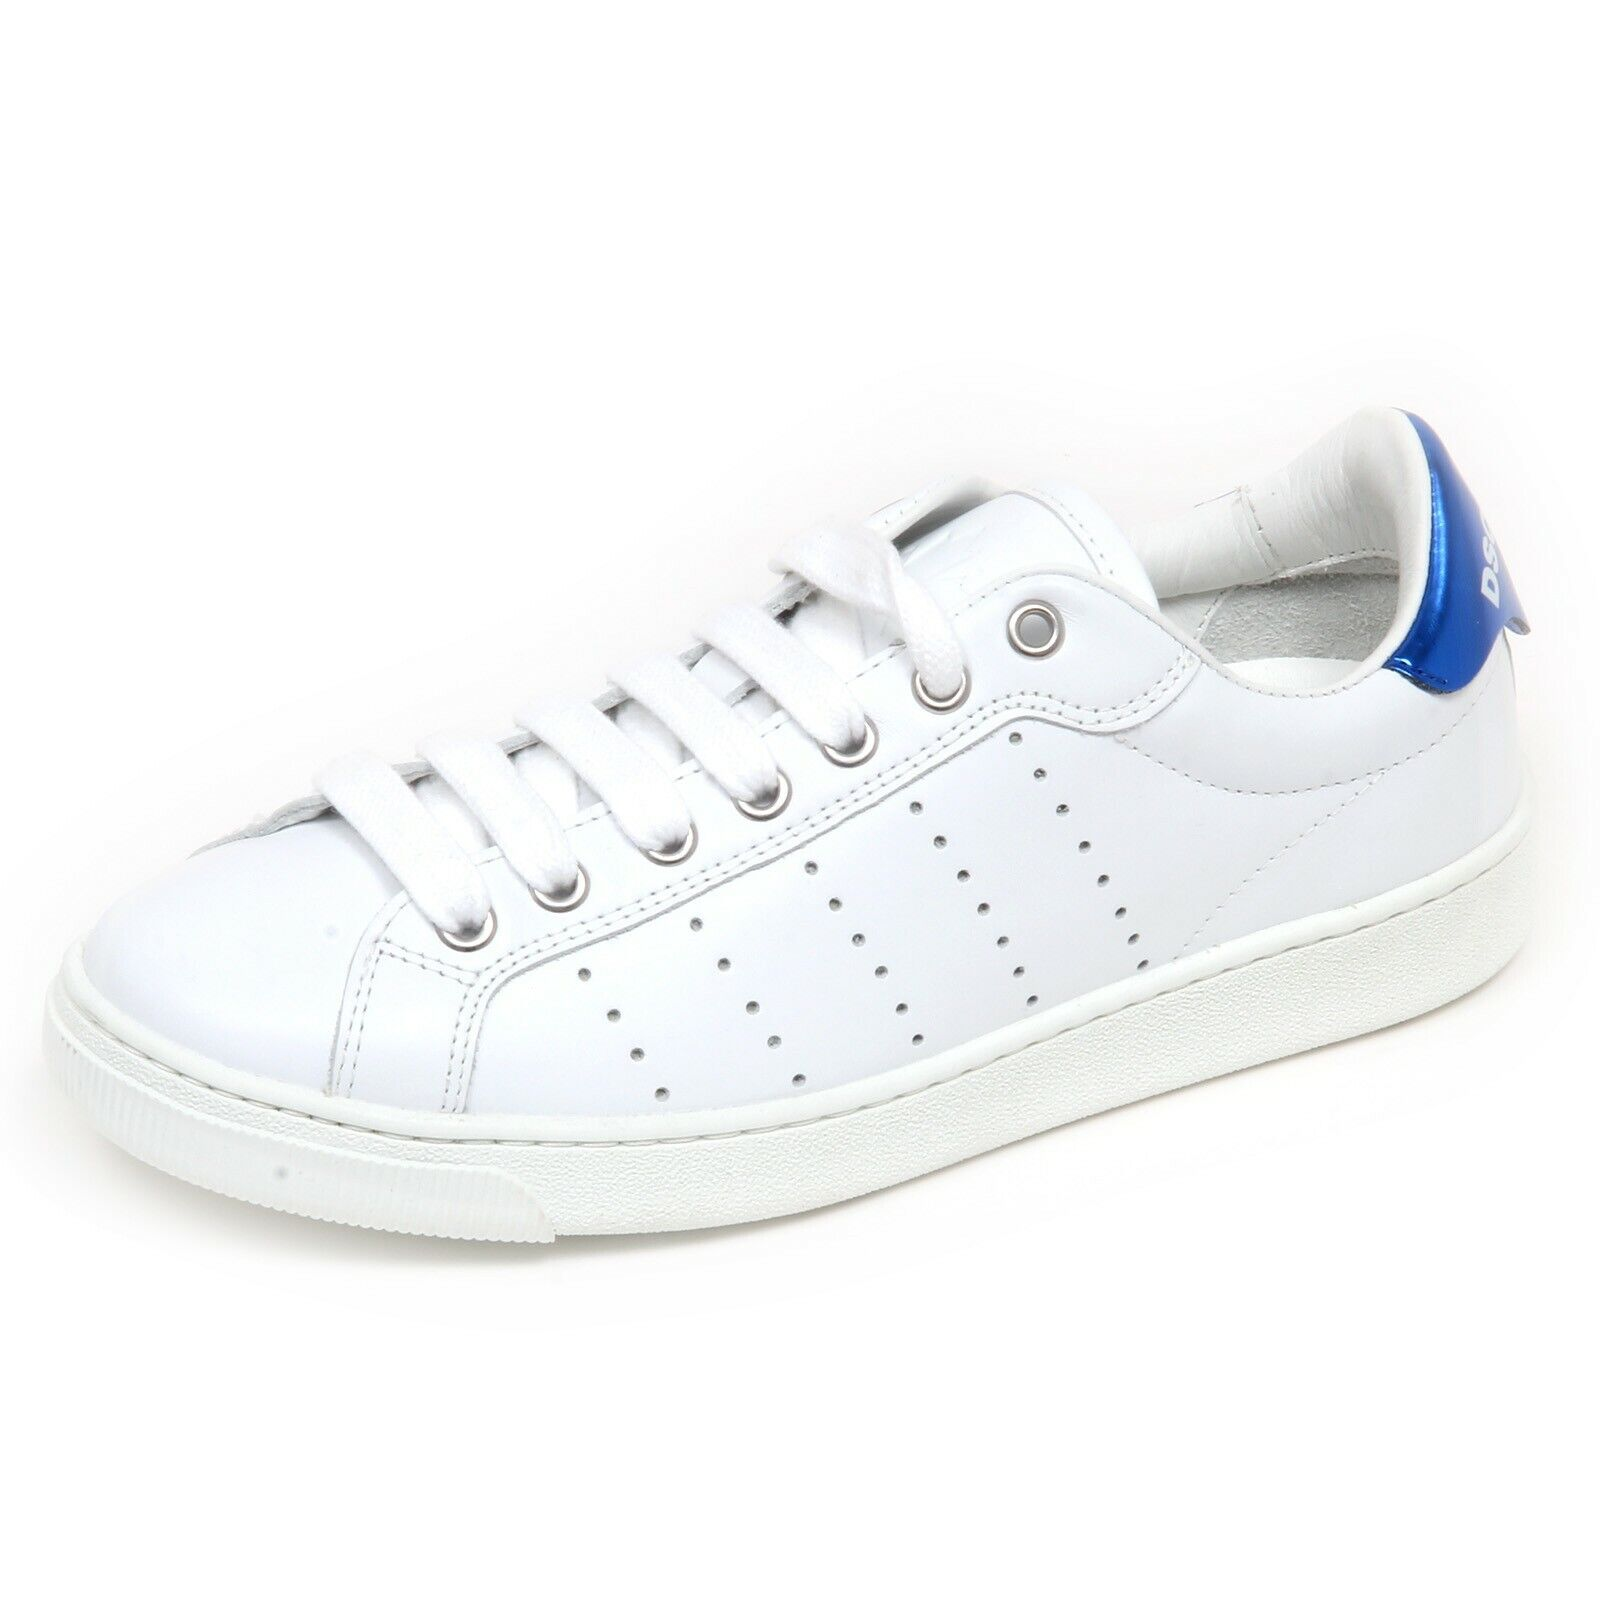 F6660 Womens Sneakers White bluee Metal DSQUARED 2 shoes shoe woman